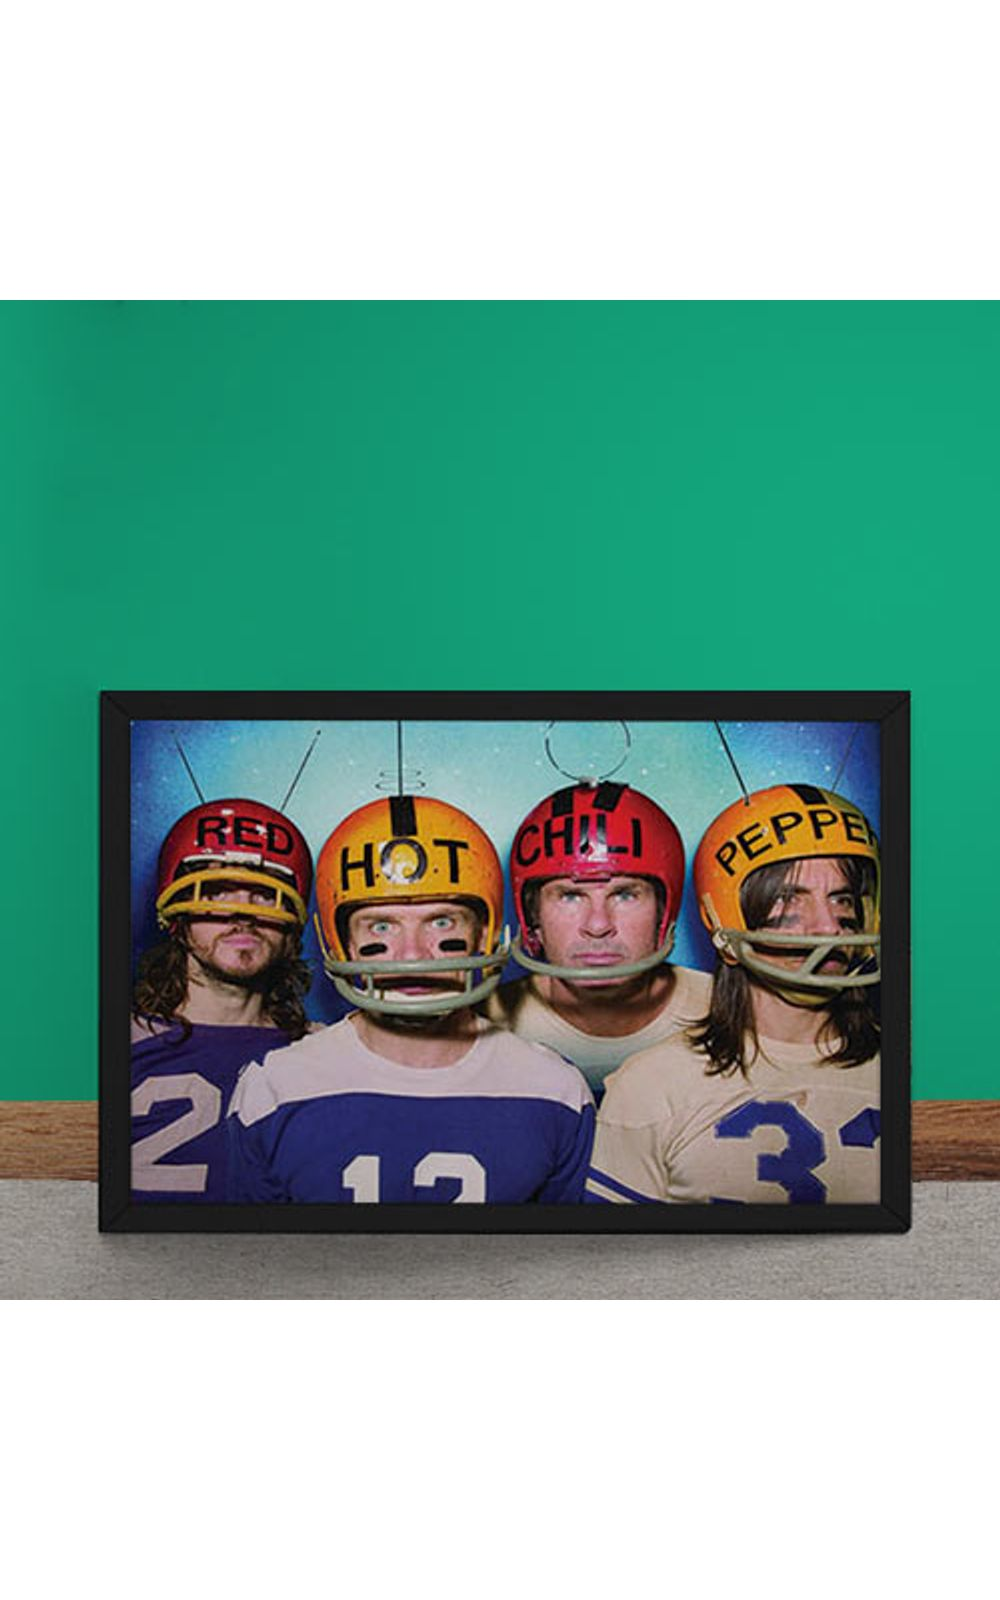 Foto 2 - Quadro Decorativo Red Hot Chili Peppers Futebol Americano